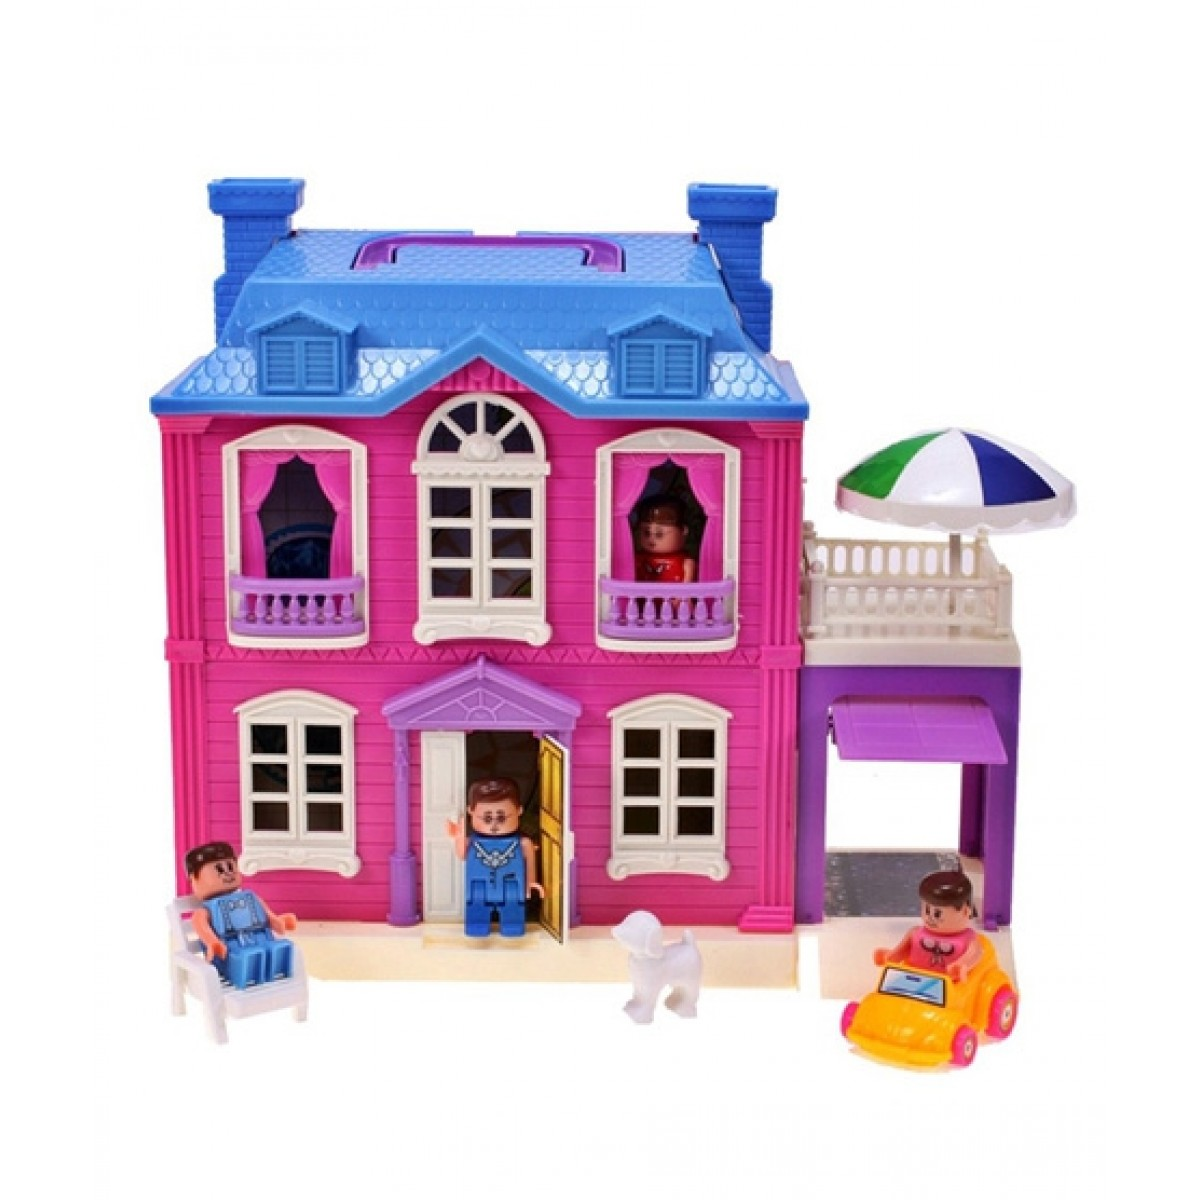 Planet X Dream Palace Giant Doll House Play Set Px 10058